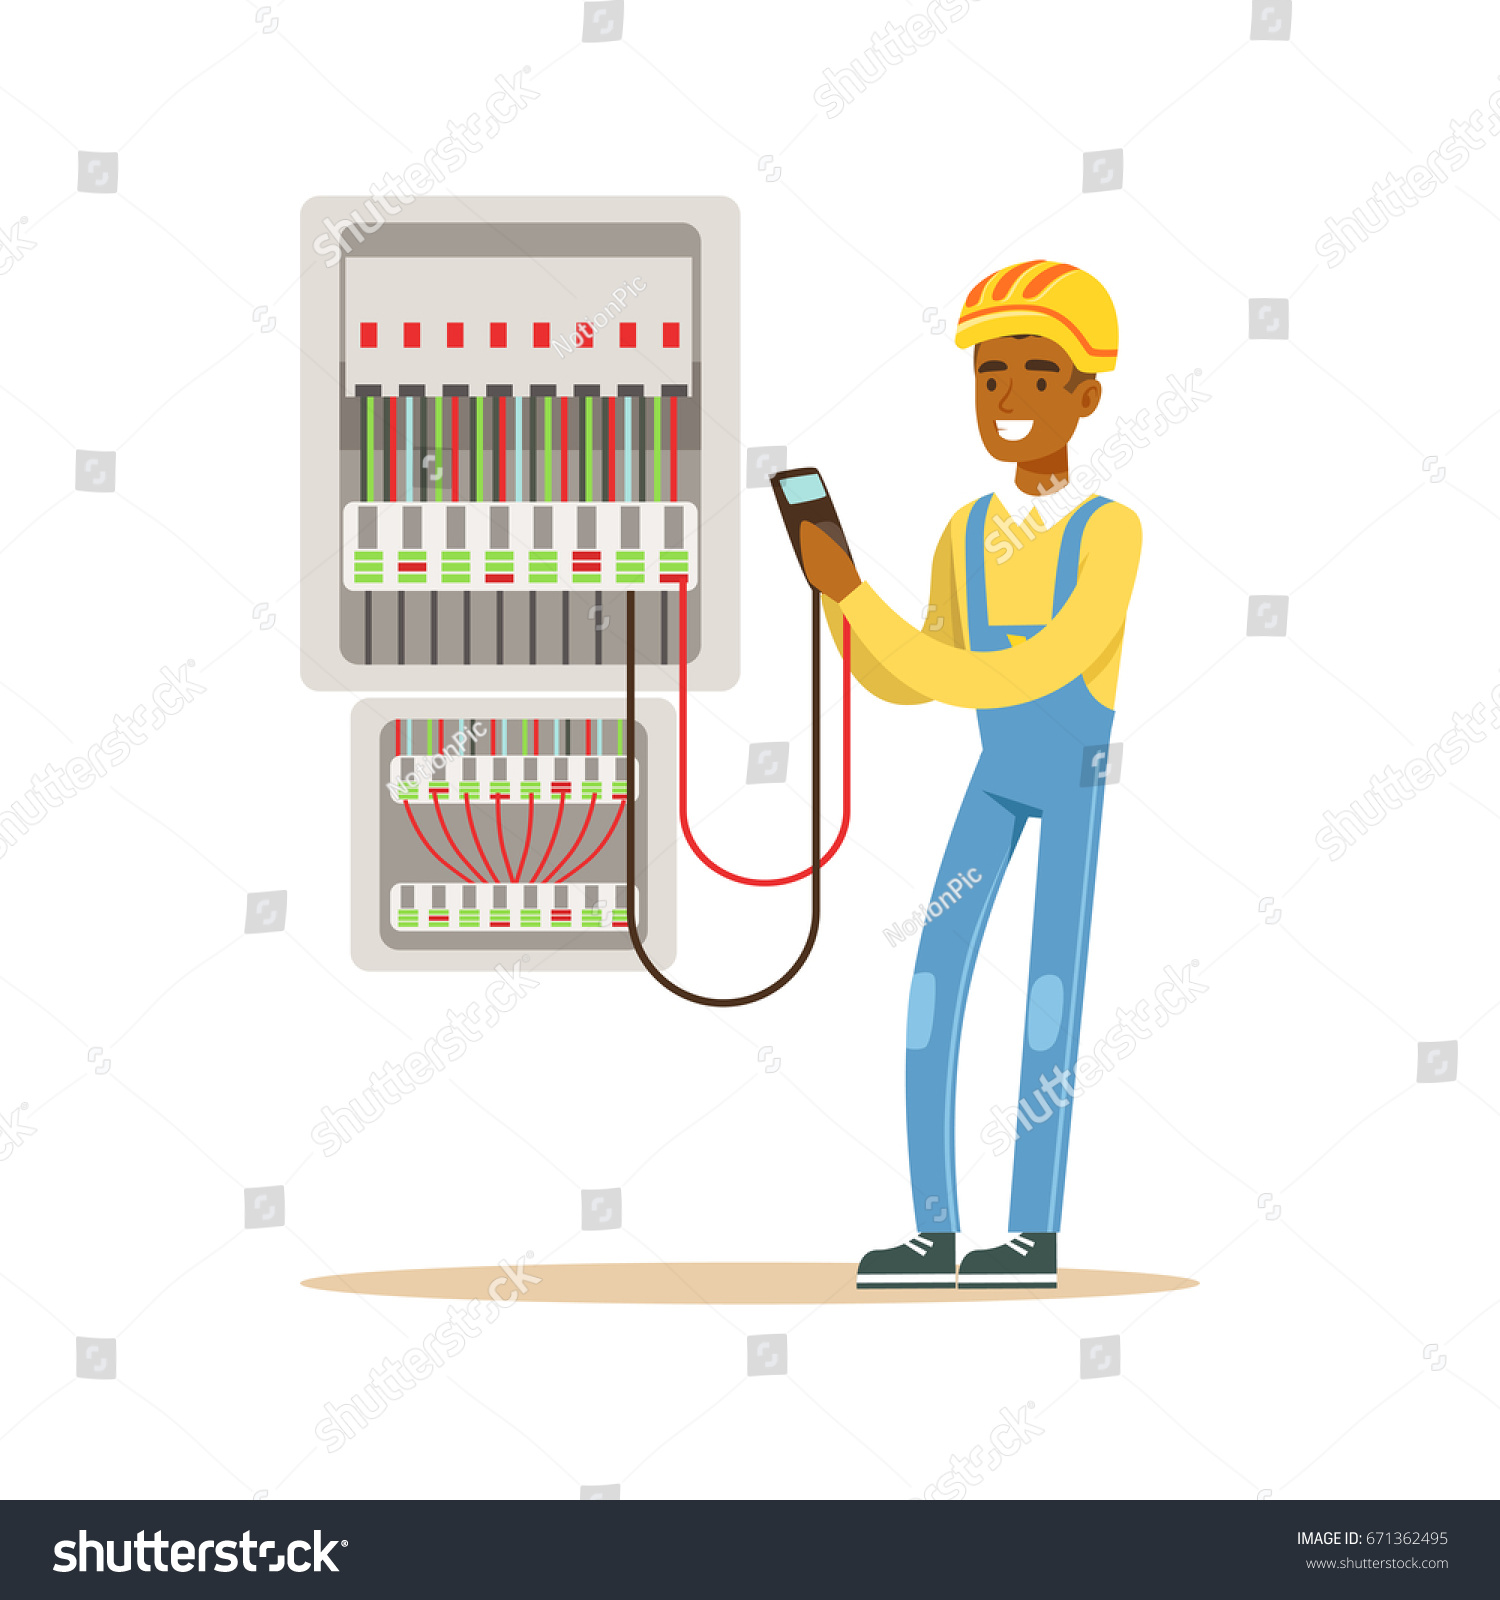 stock vector electrician engineer measuring the voltage output in fuse box electric man performing electrical 671362495 electrician engineer measuring voltage output fuse stock vector how a fuse box works at crackthecode.co